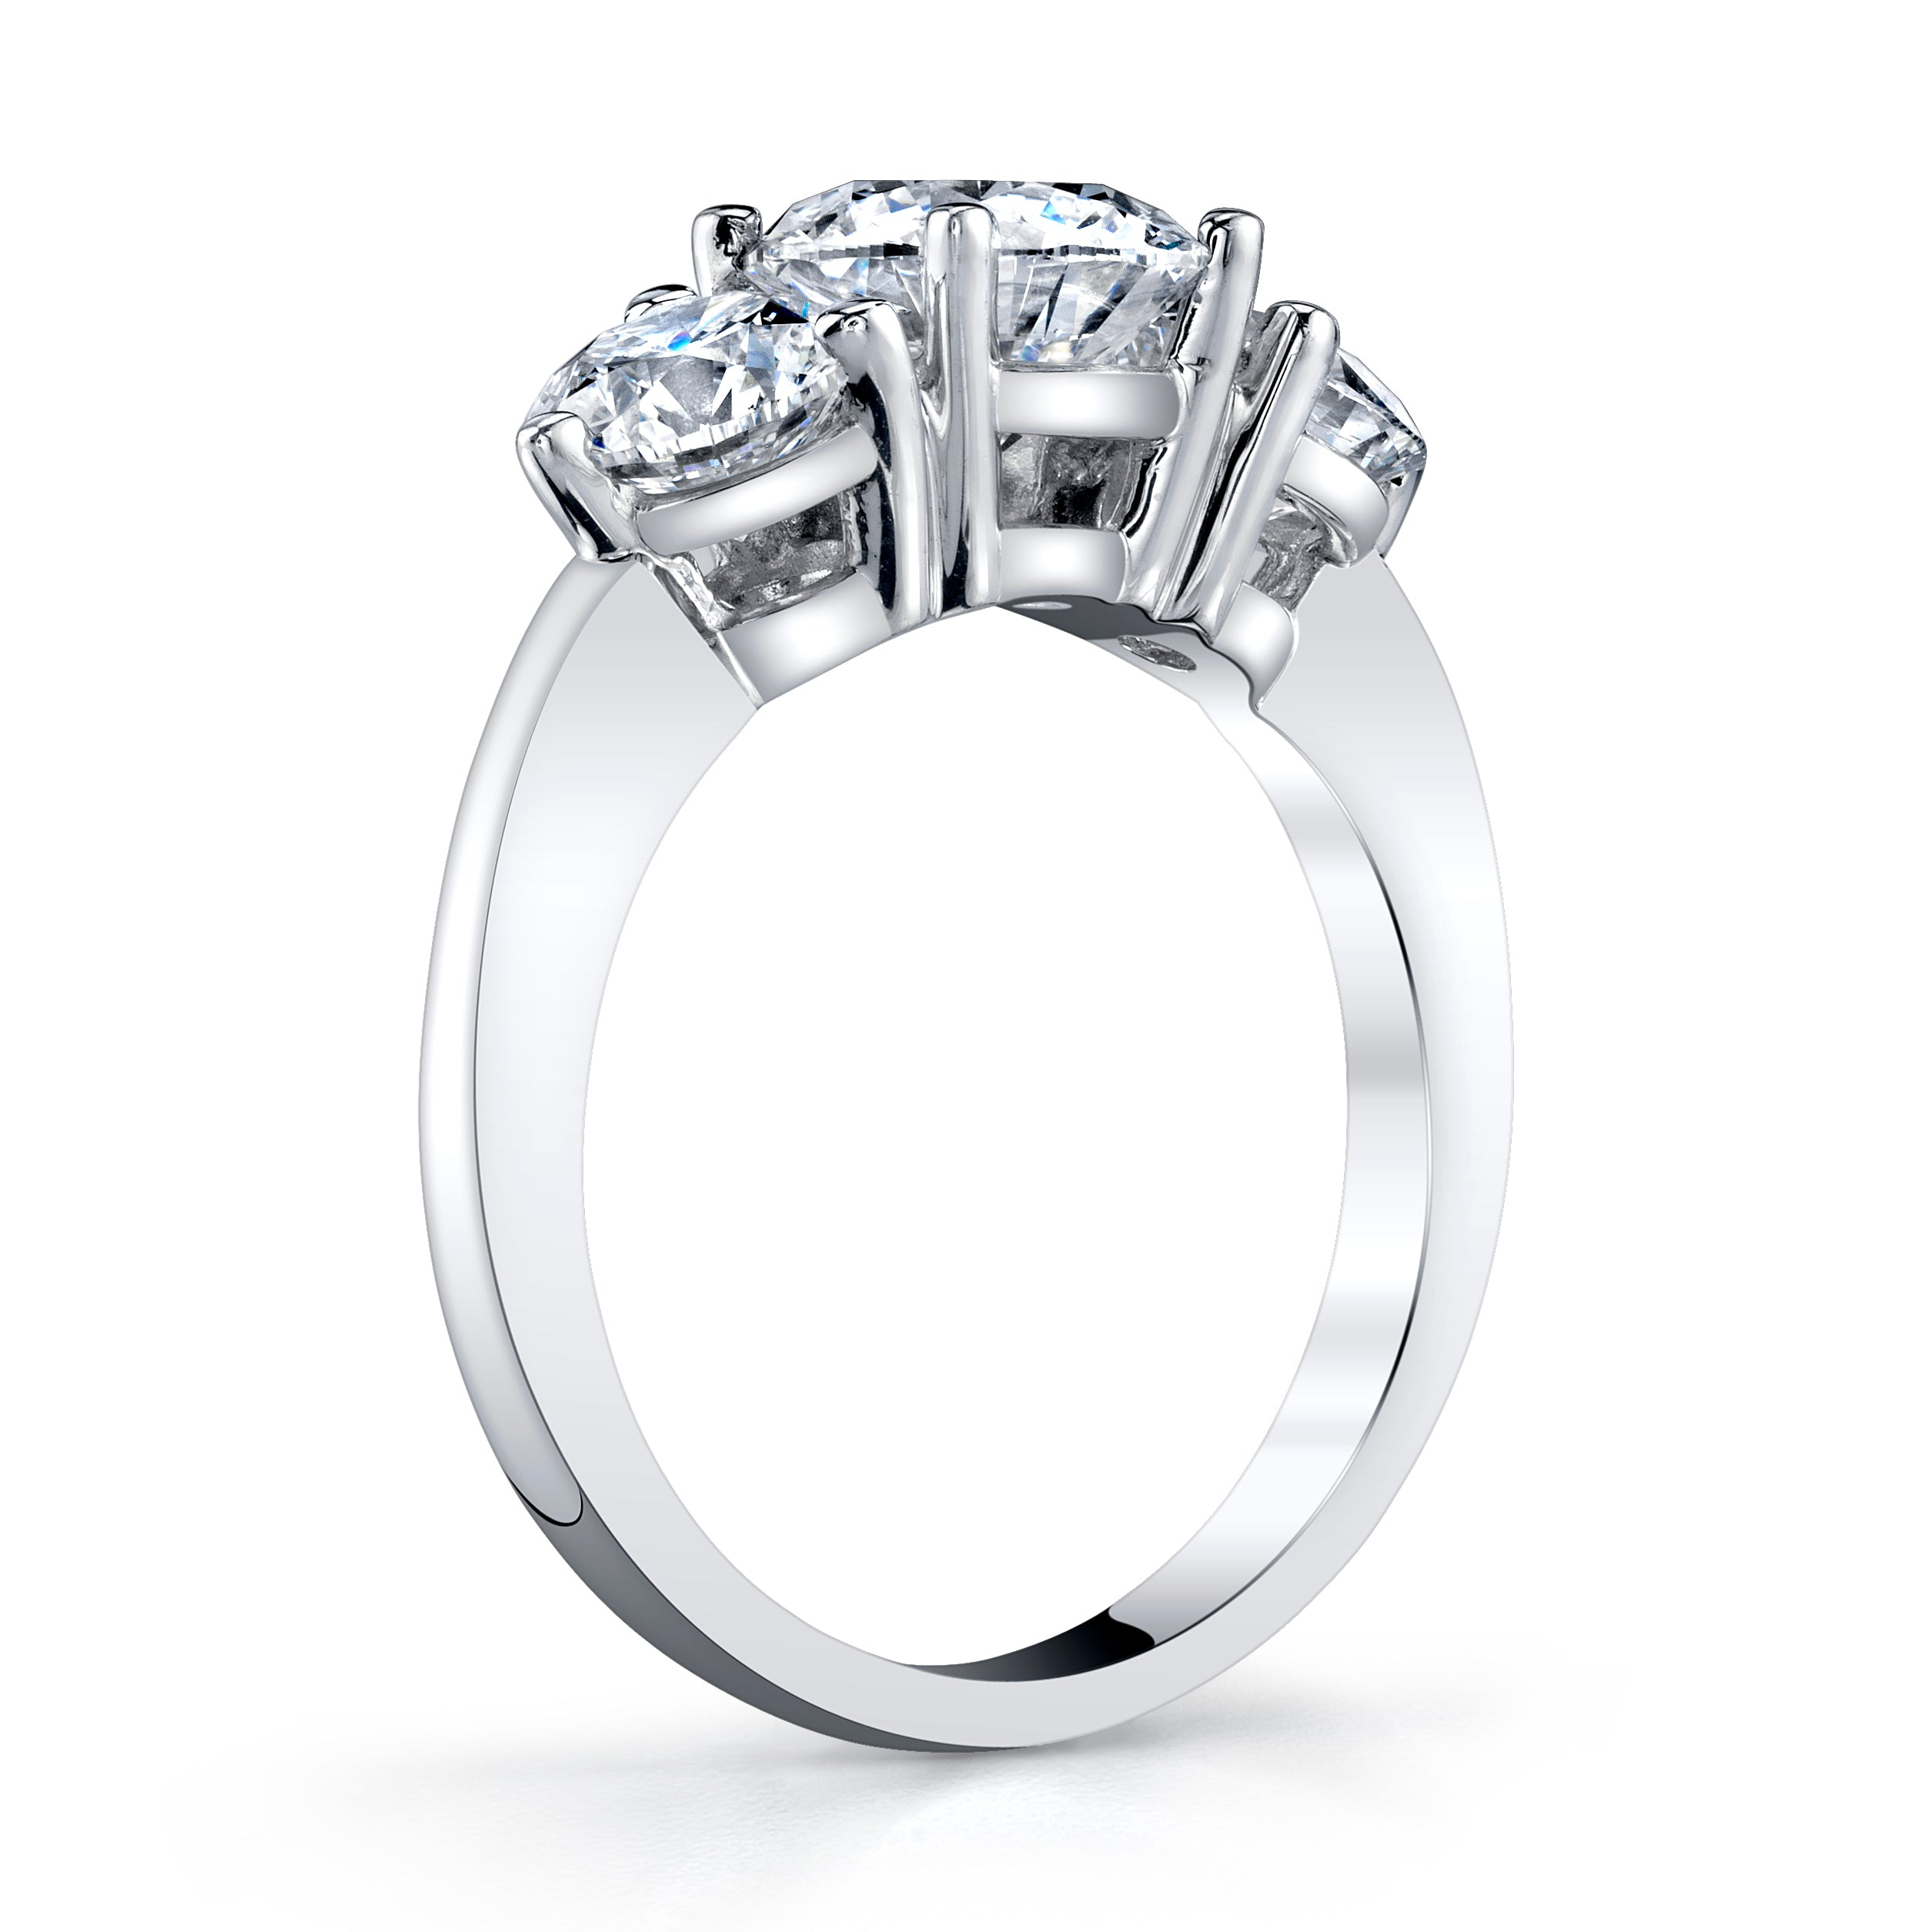 Platinum 3-Stone Round Brilliant Cut Diamond Ring